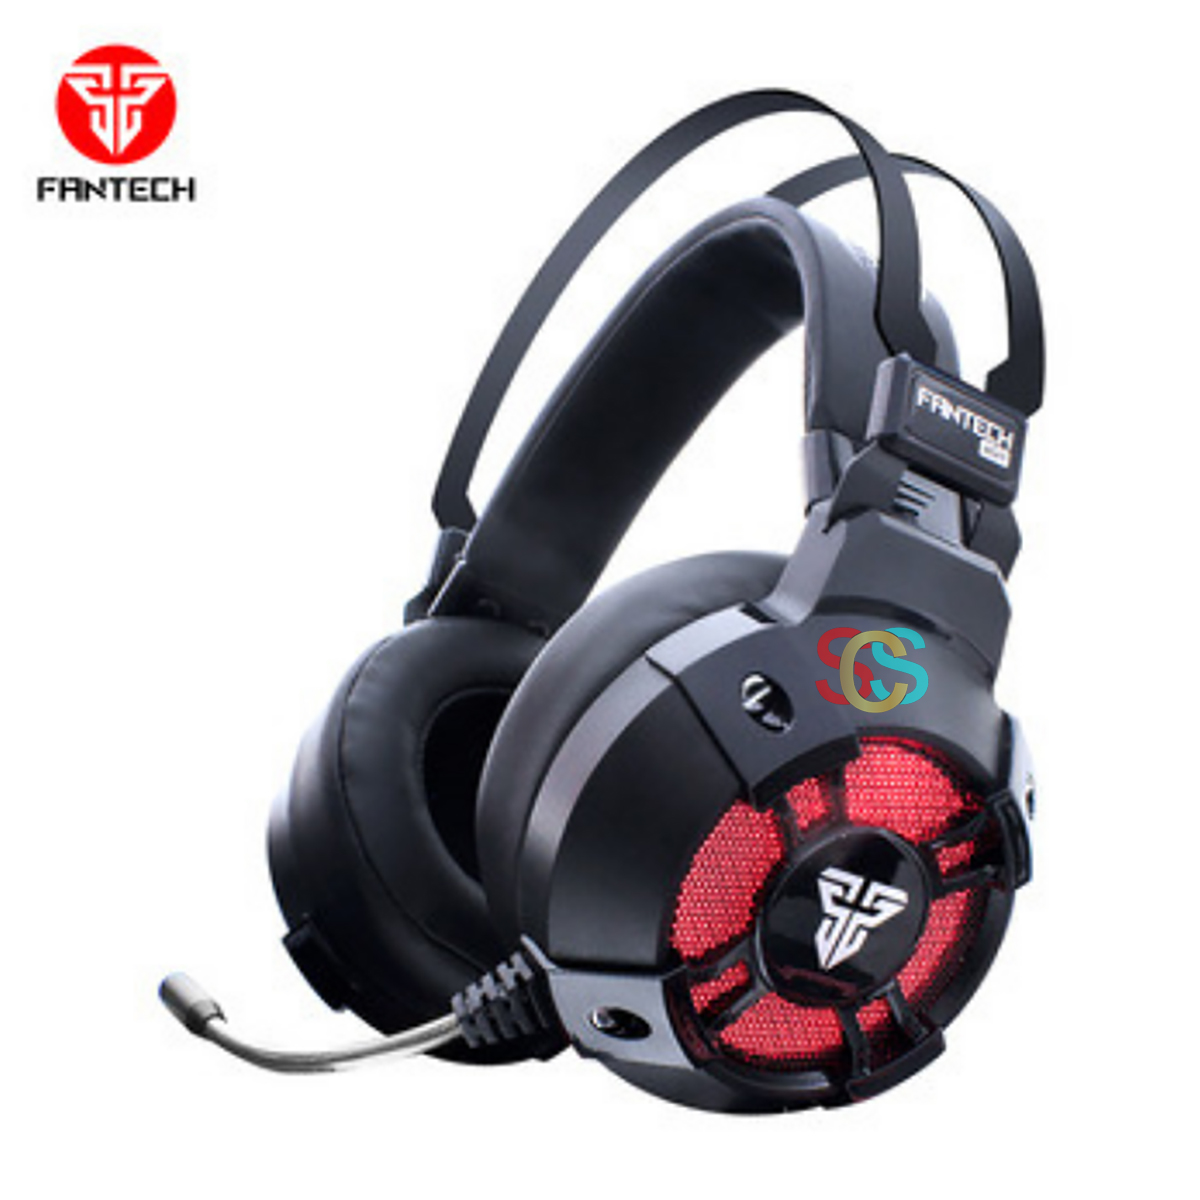 Fantech HG11 Pro Captain Wired Black Gaming Headphone